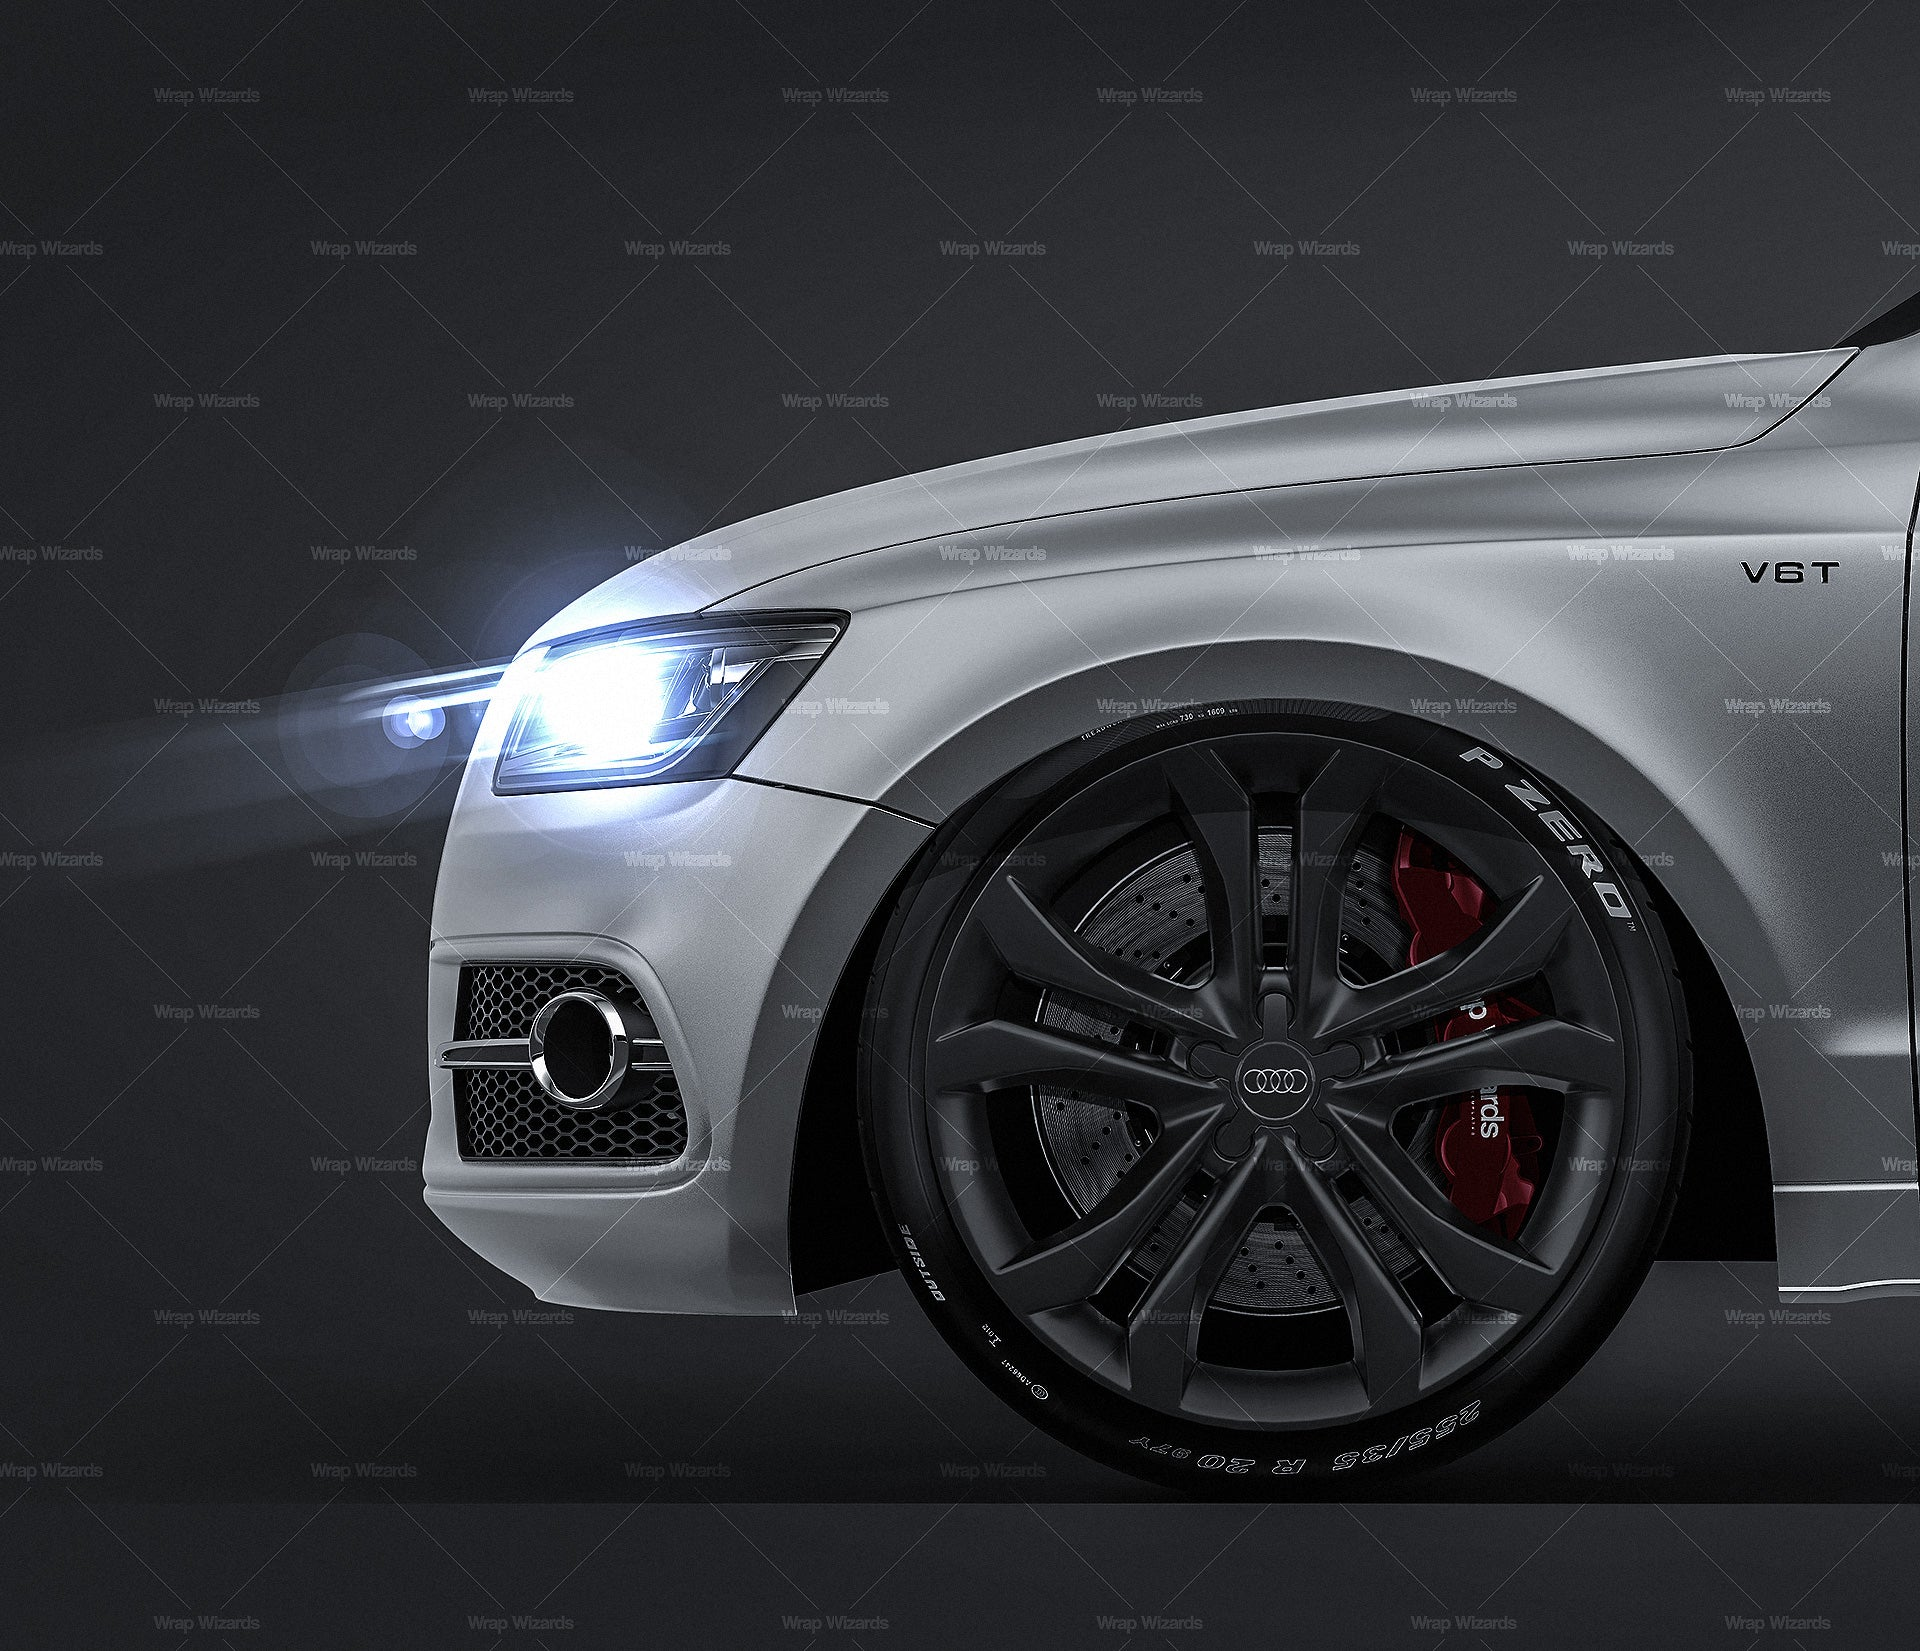 Audi SQ5 2013 all sides Car Mockup Template.psd